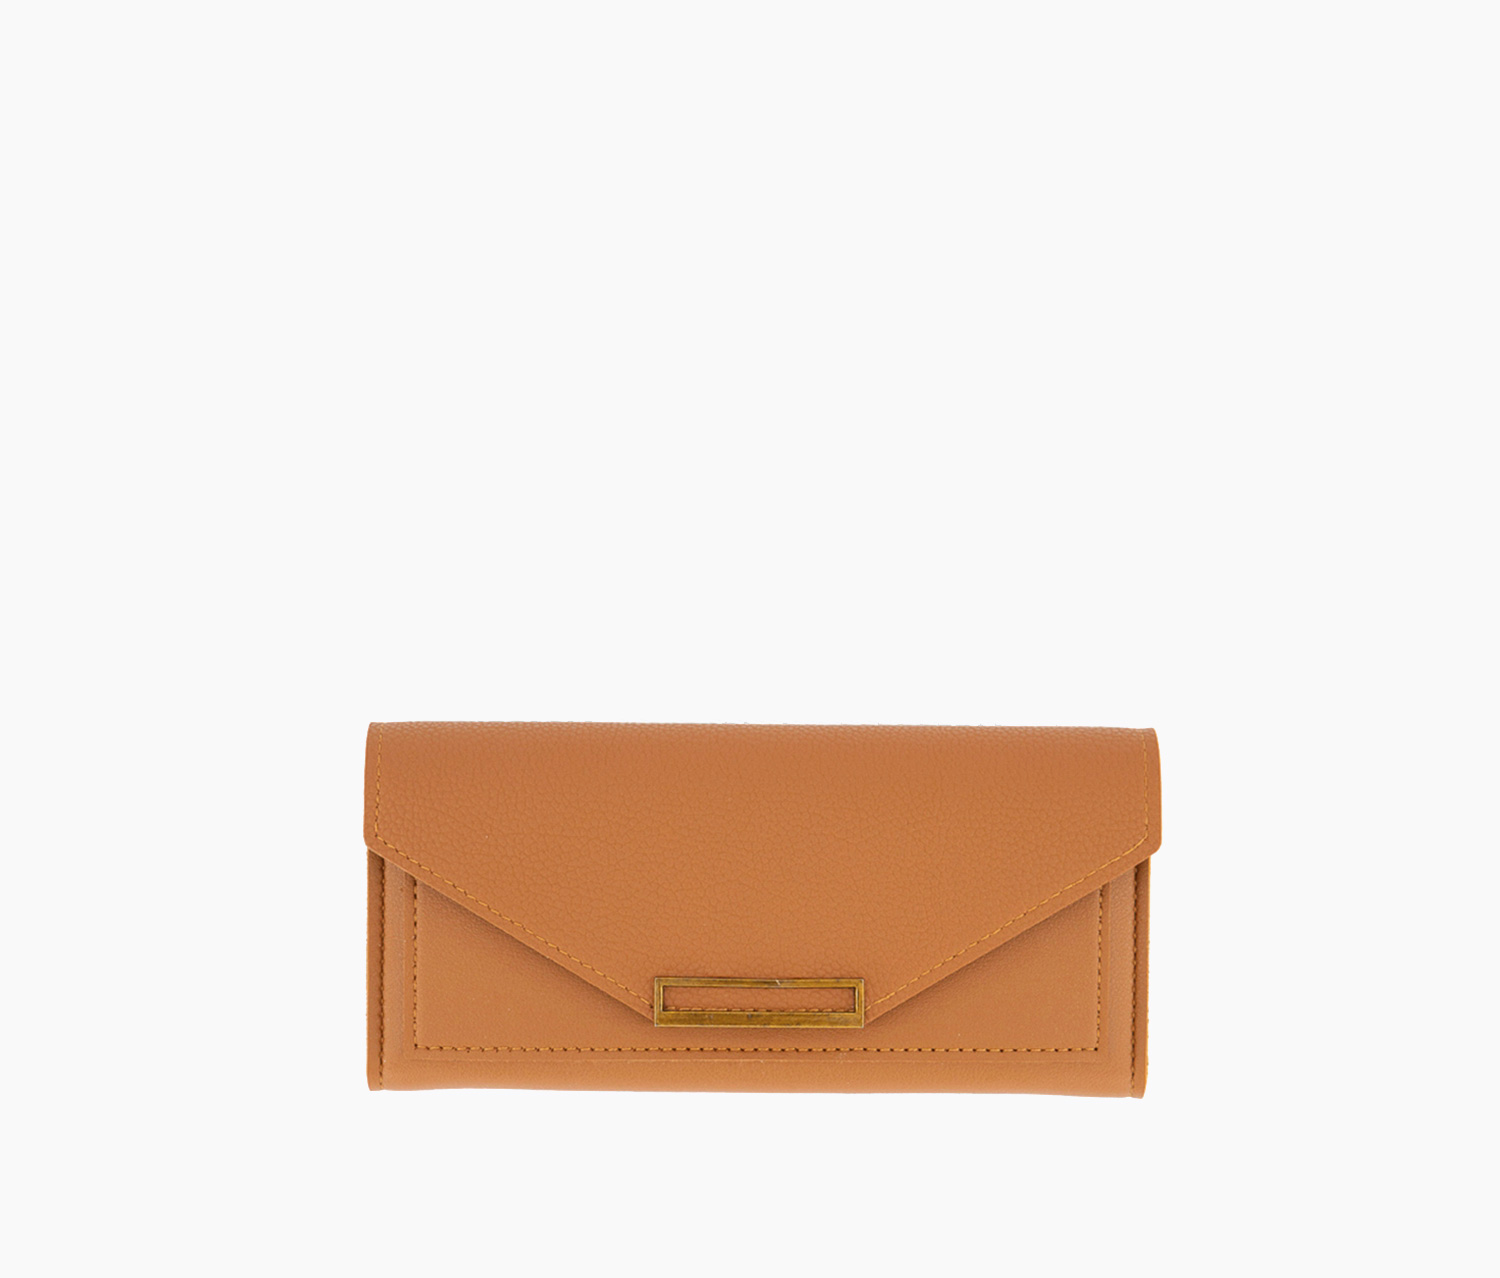 Women's Synthetic Leather Wallet, Burnt Orange